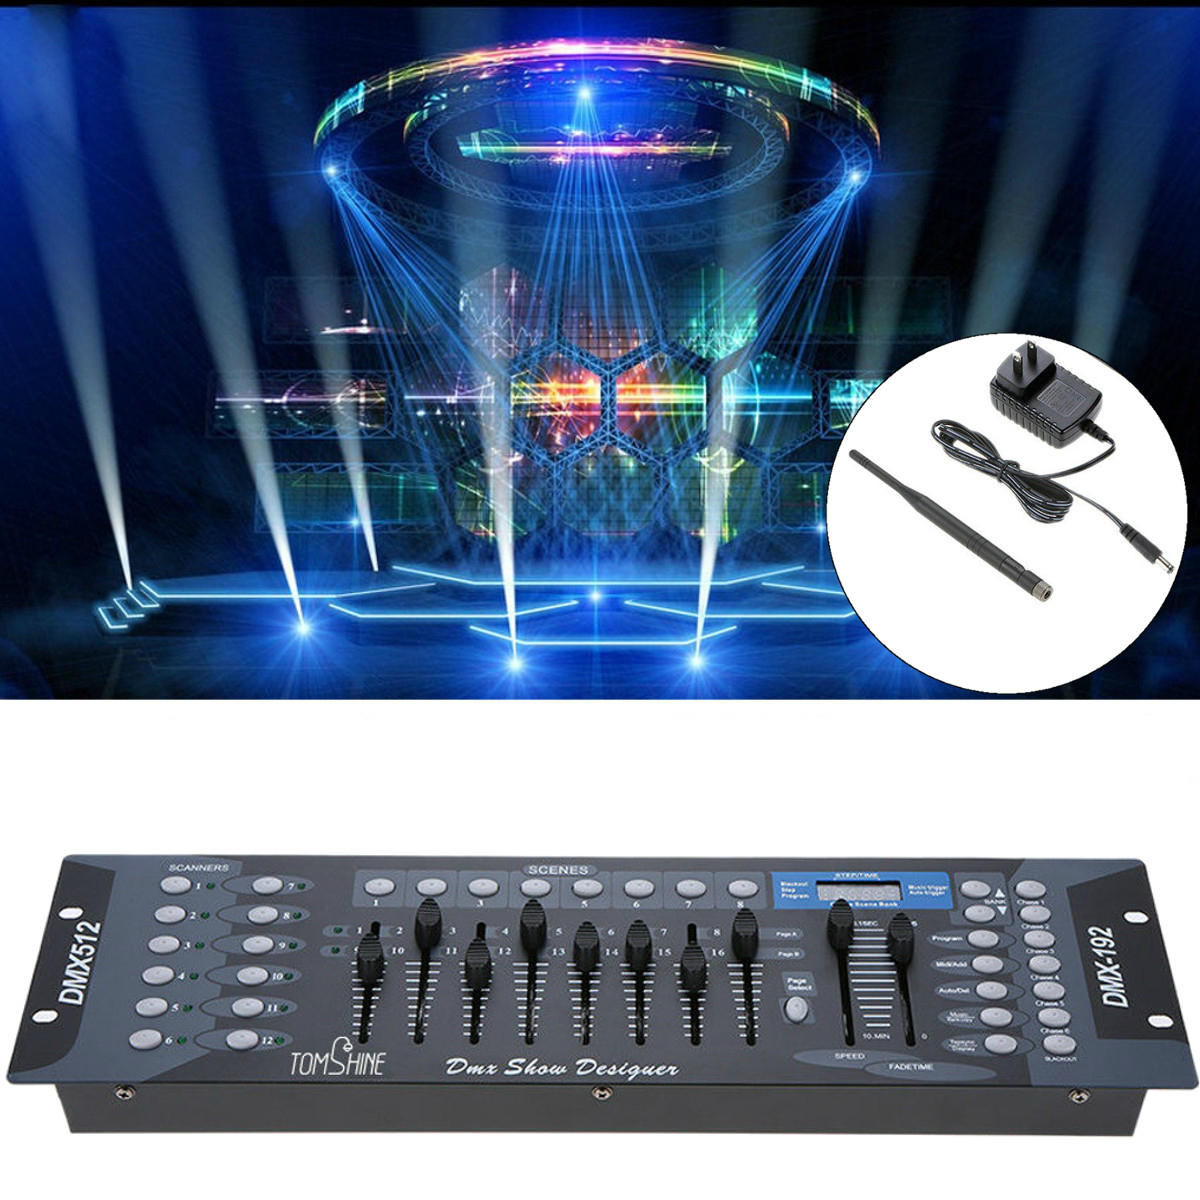 192 Channels DMX512 Light Controller Show Designer Console For Stage Light US Plug